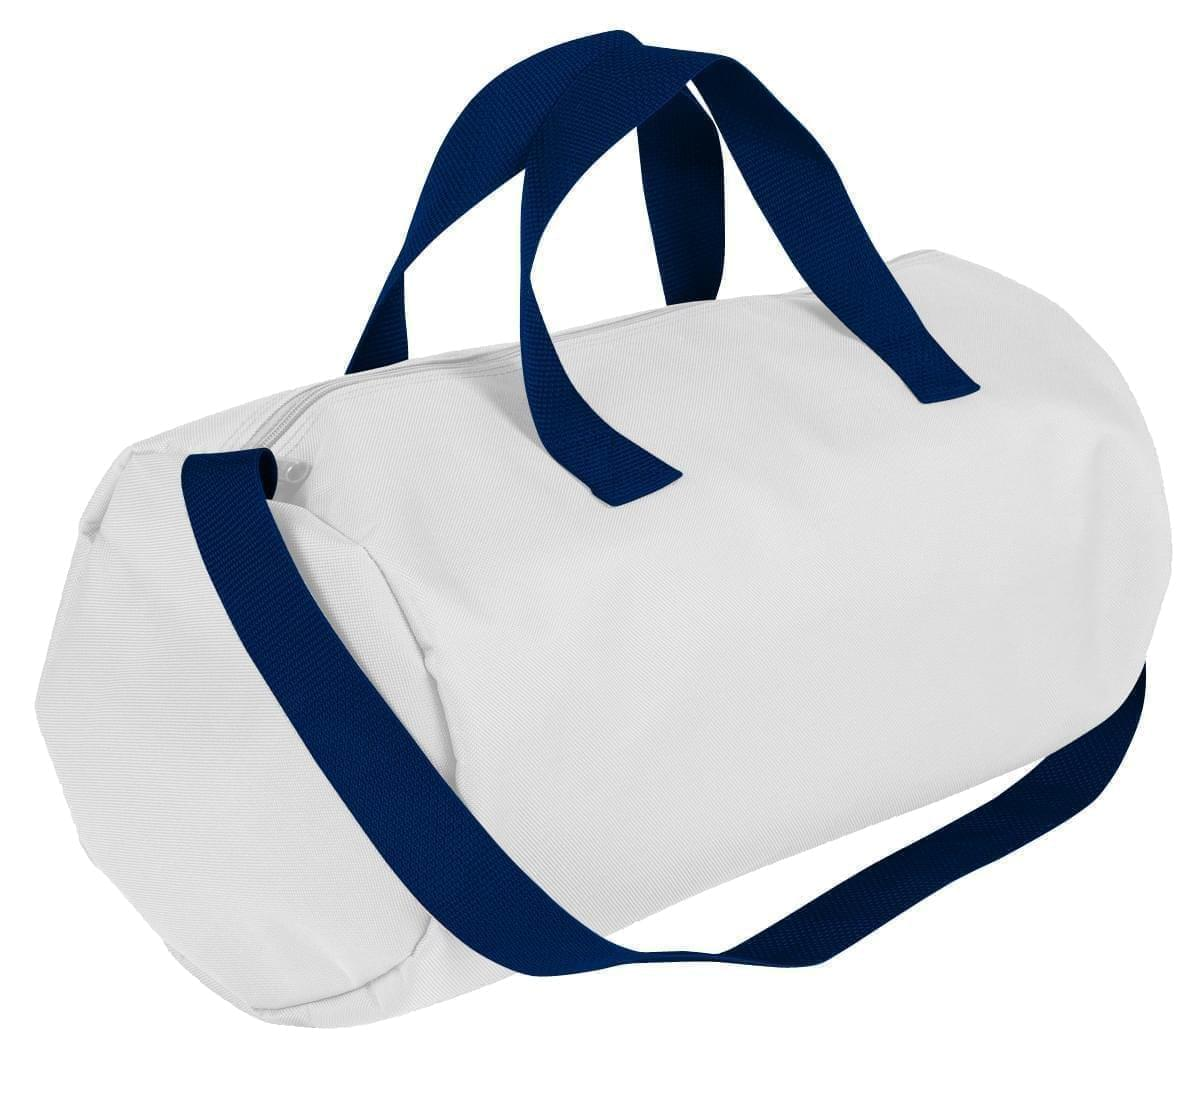 USA Made Nylon Poly Gym Roll Bags, White-Navy, ROCX31AA3Z